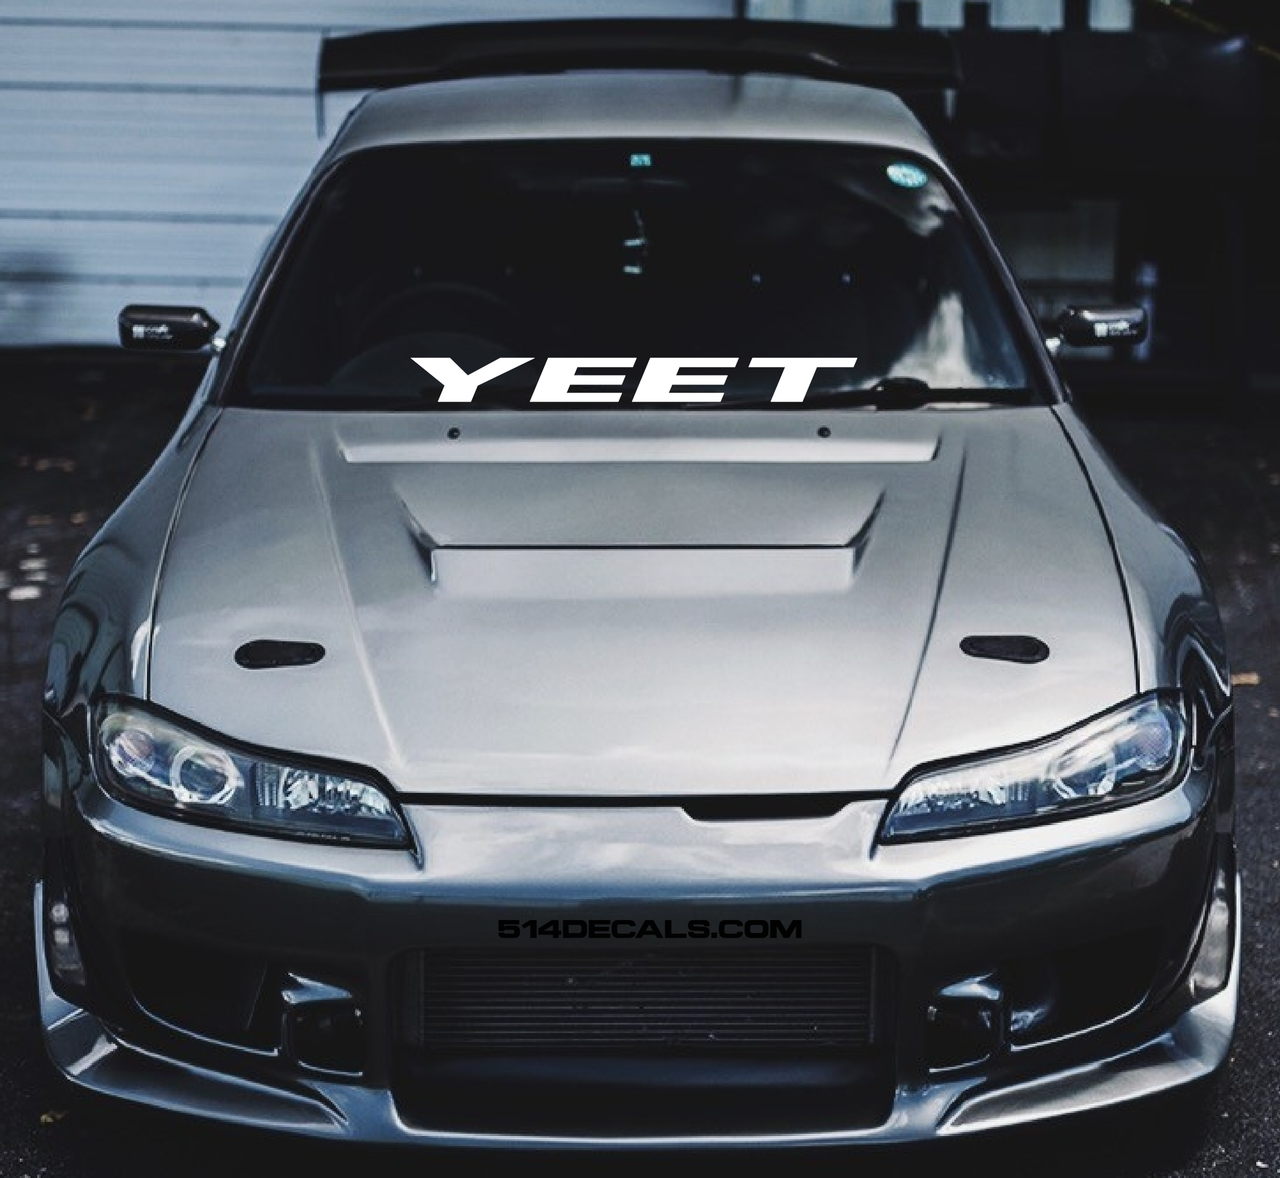 Yeet Windshield Banner 514decals Only site for owners, stories on car lifestyle, modifications, and car videos made for watching on mobile phones. yeet windshield banner